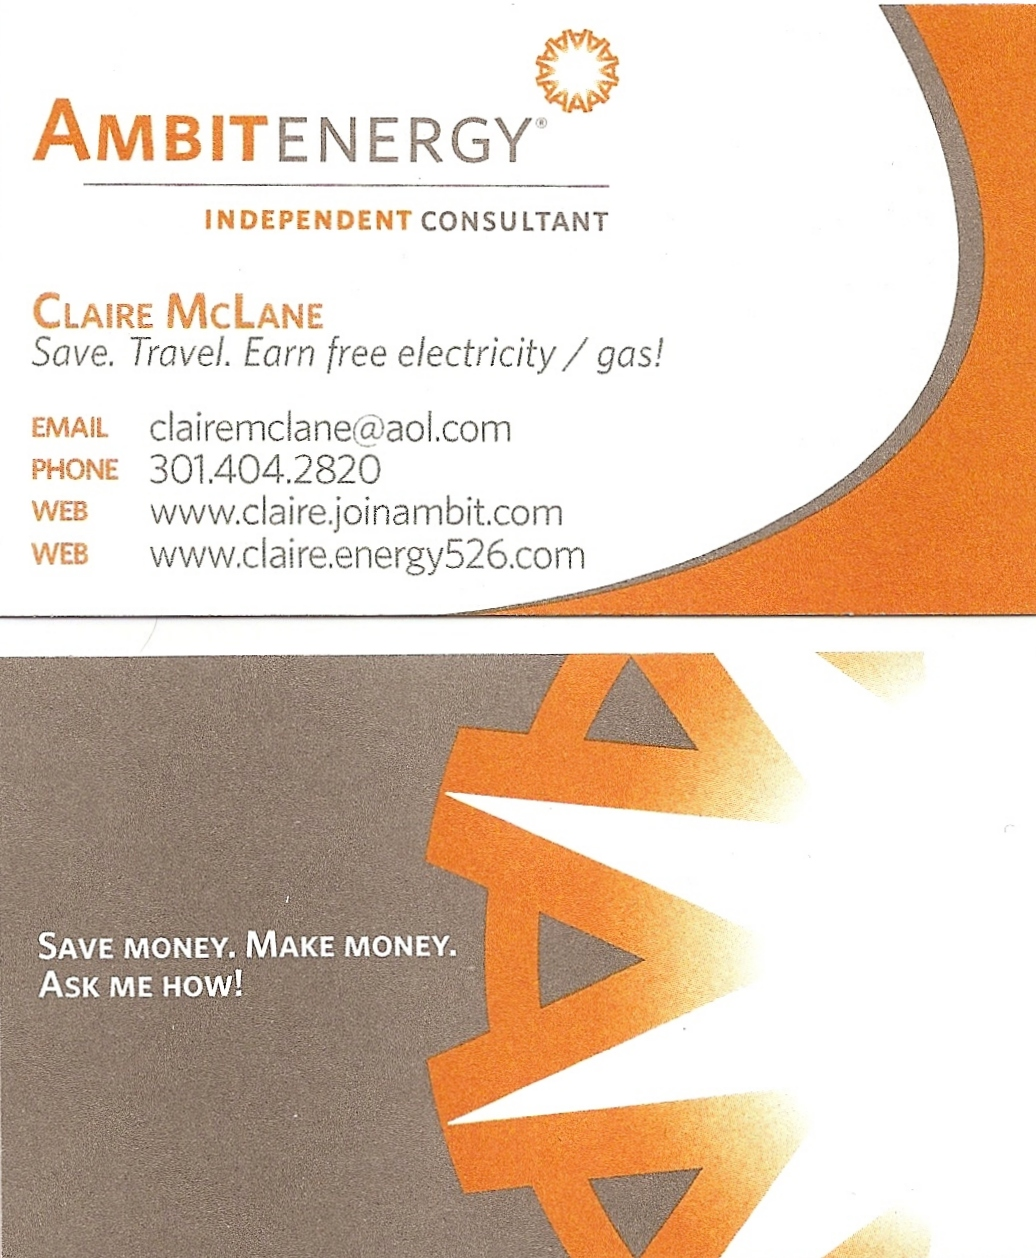 2 x 35 business card template business card sample ambit energy business card template cheaphphosting